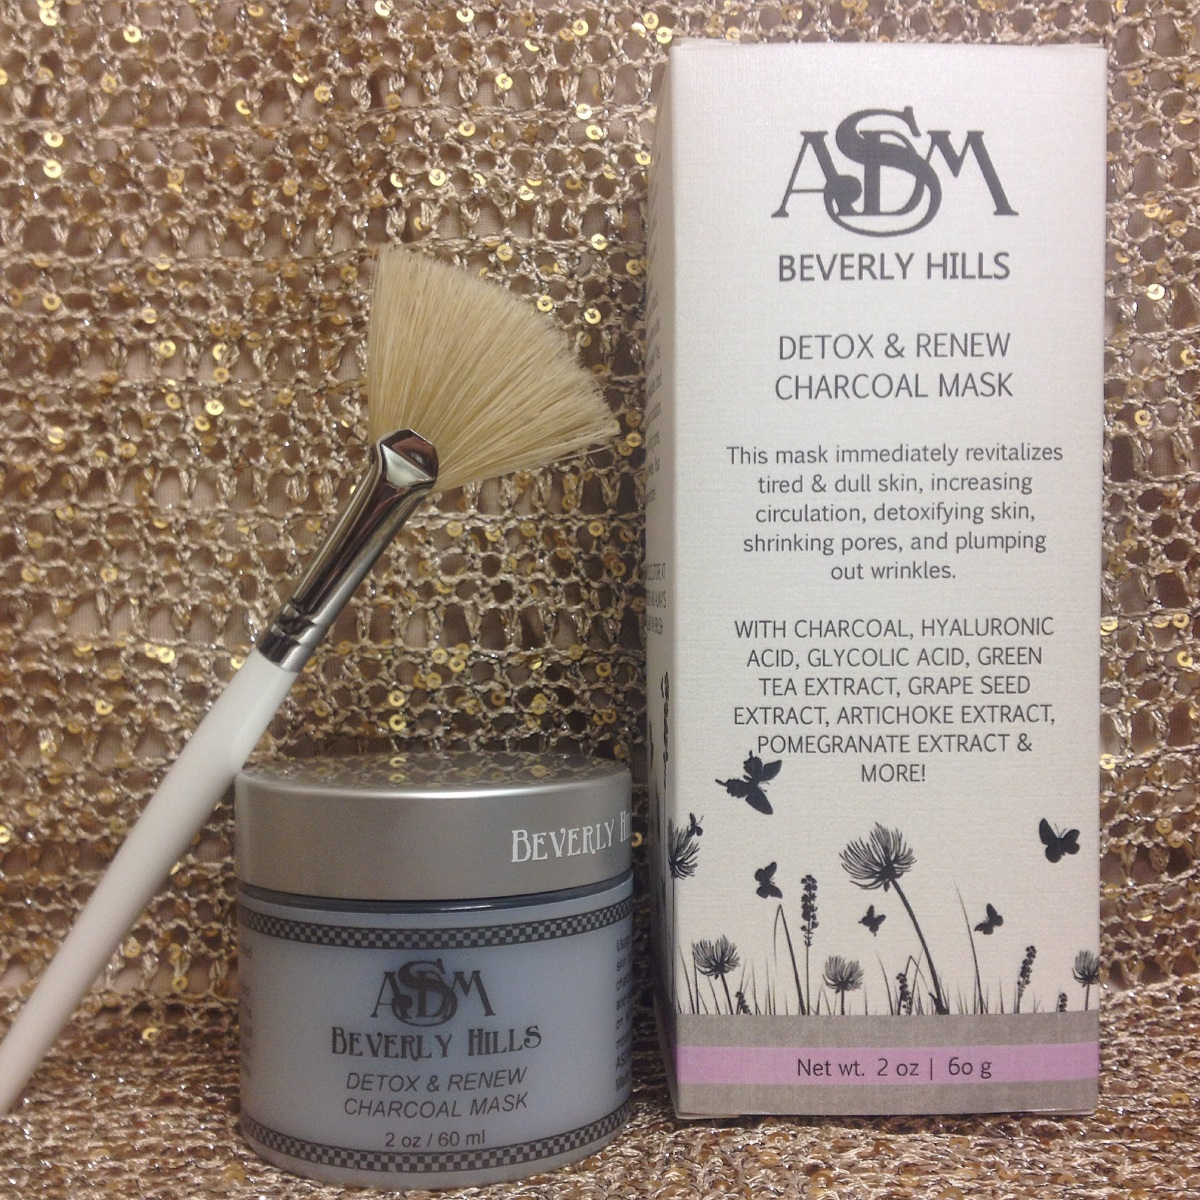 Detox Your Skin With This Diy Charcoal Mask: ASDM Beverly Hills Detox & Renew Charcoal Mask Review